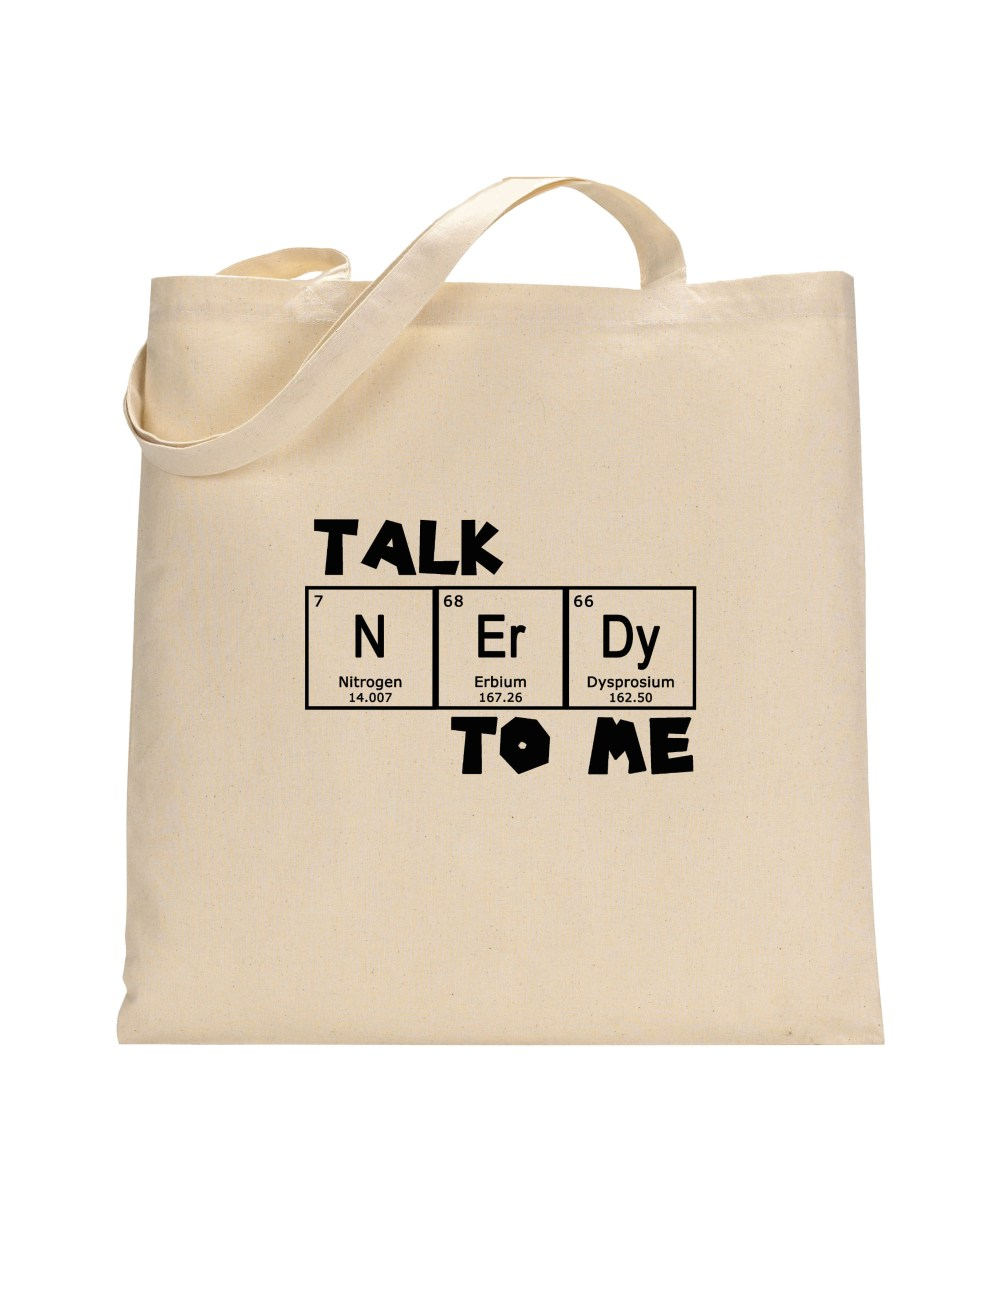 Talk Nerdy To Me Tote Bag / Market Bag / Reusable environmentally friendly Chemical Structure of Seratonin Elements Ecobag Eco Bag